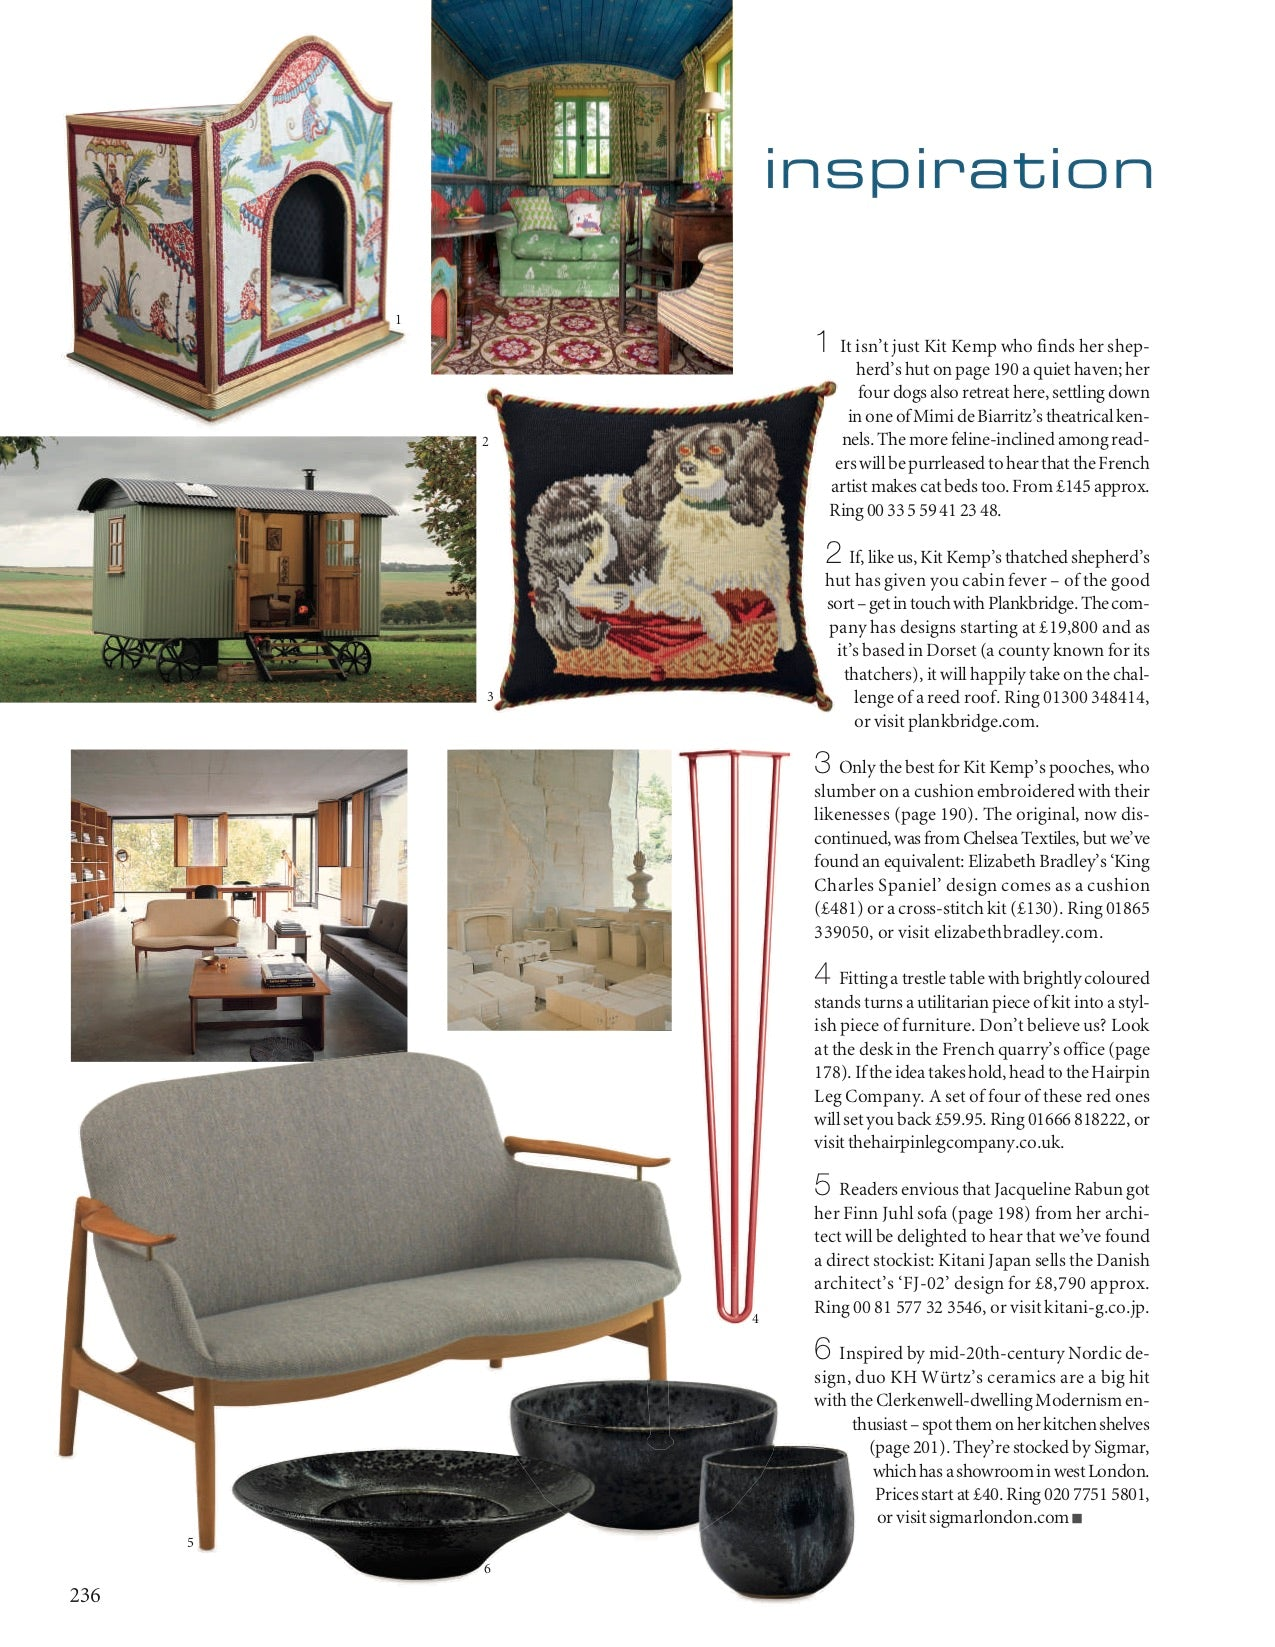 Elizabeth Bradley Design As Seen In The World of Interiors Magazine